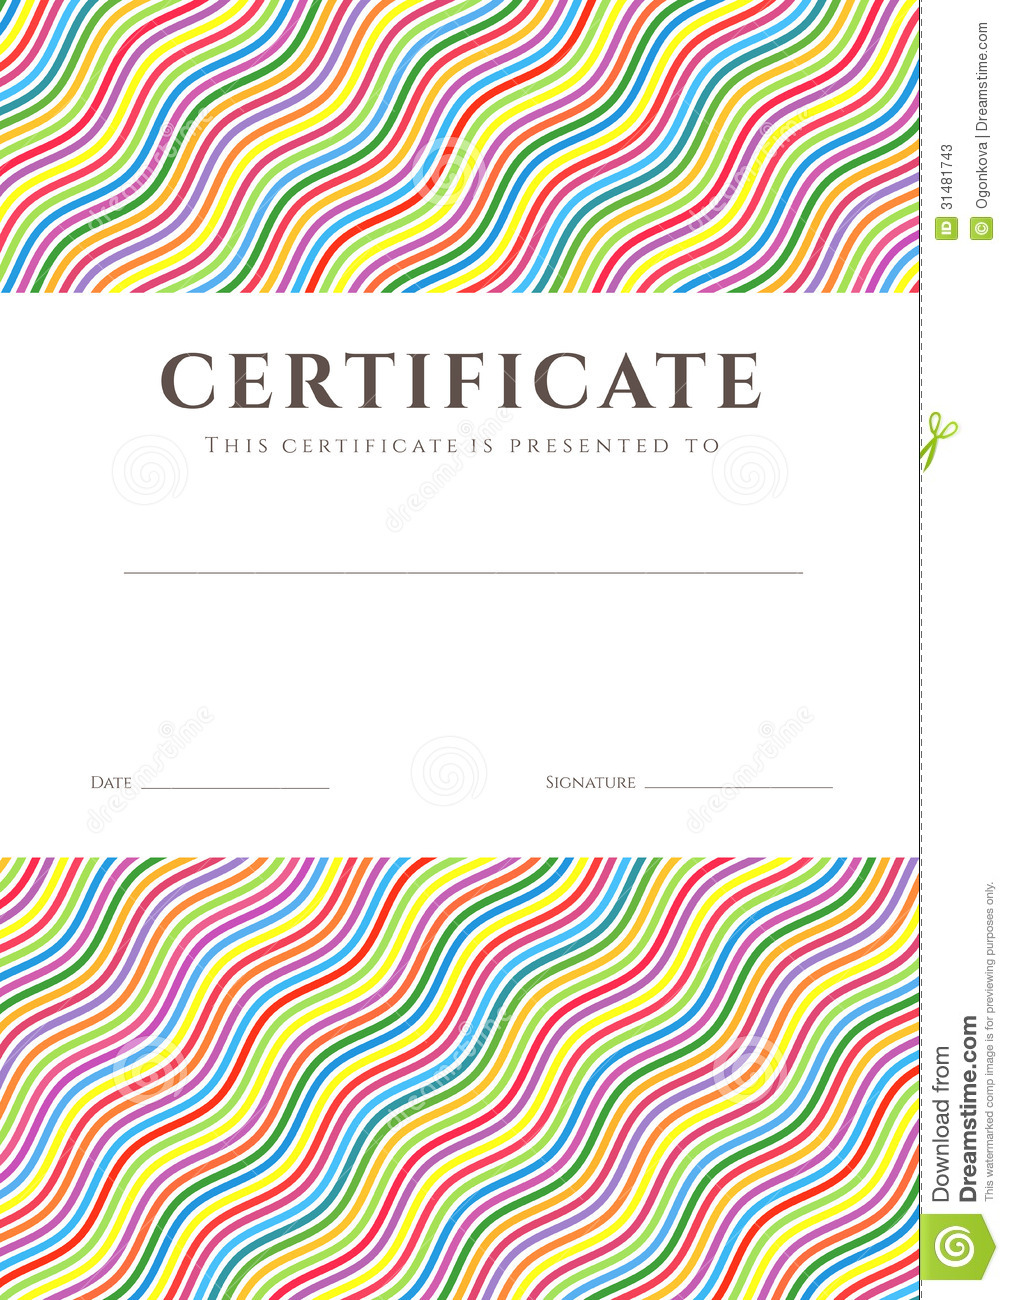 Colorful Certificate   Diploma Background Template Stock